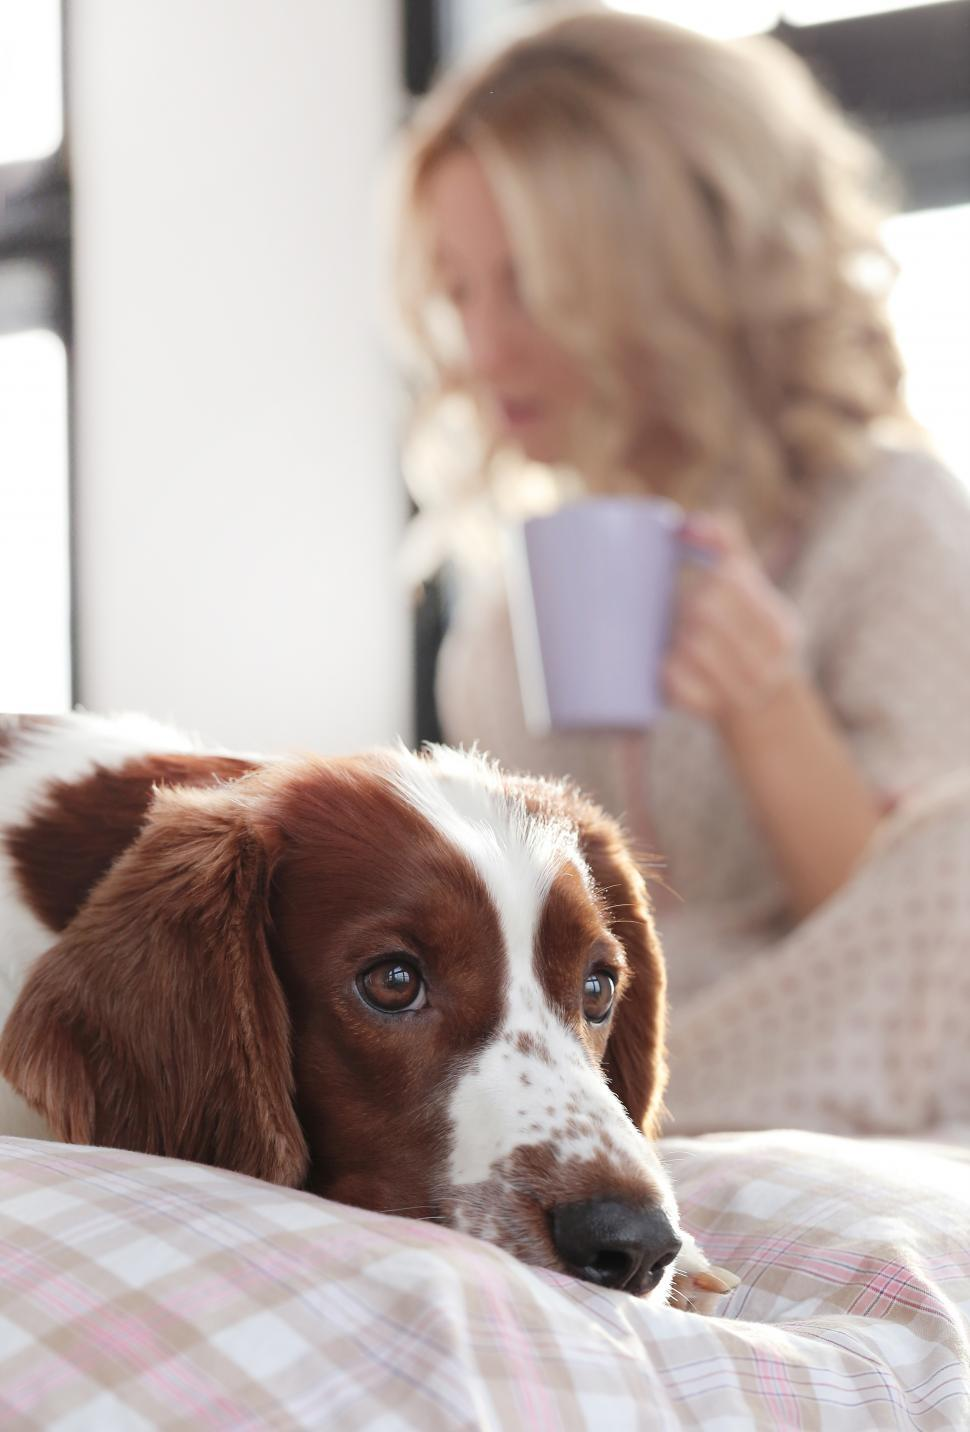 Download Free Stock Photo of Girl in bed in the background. Dog in front.